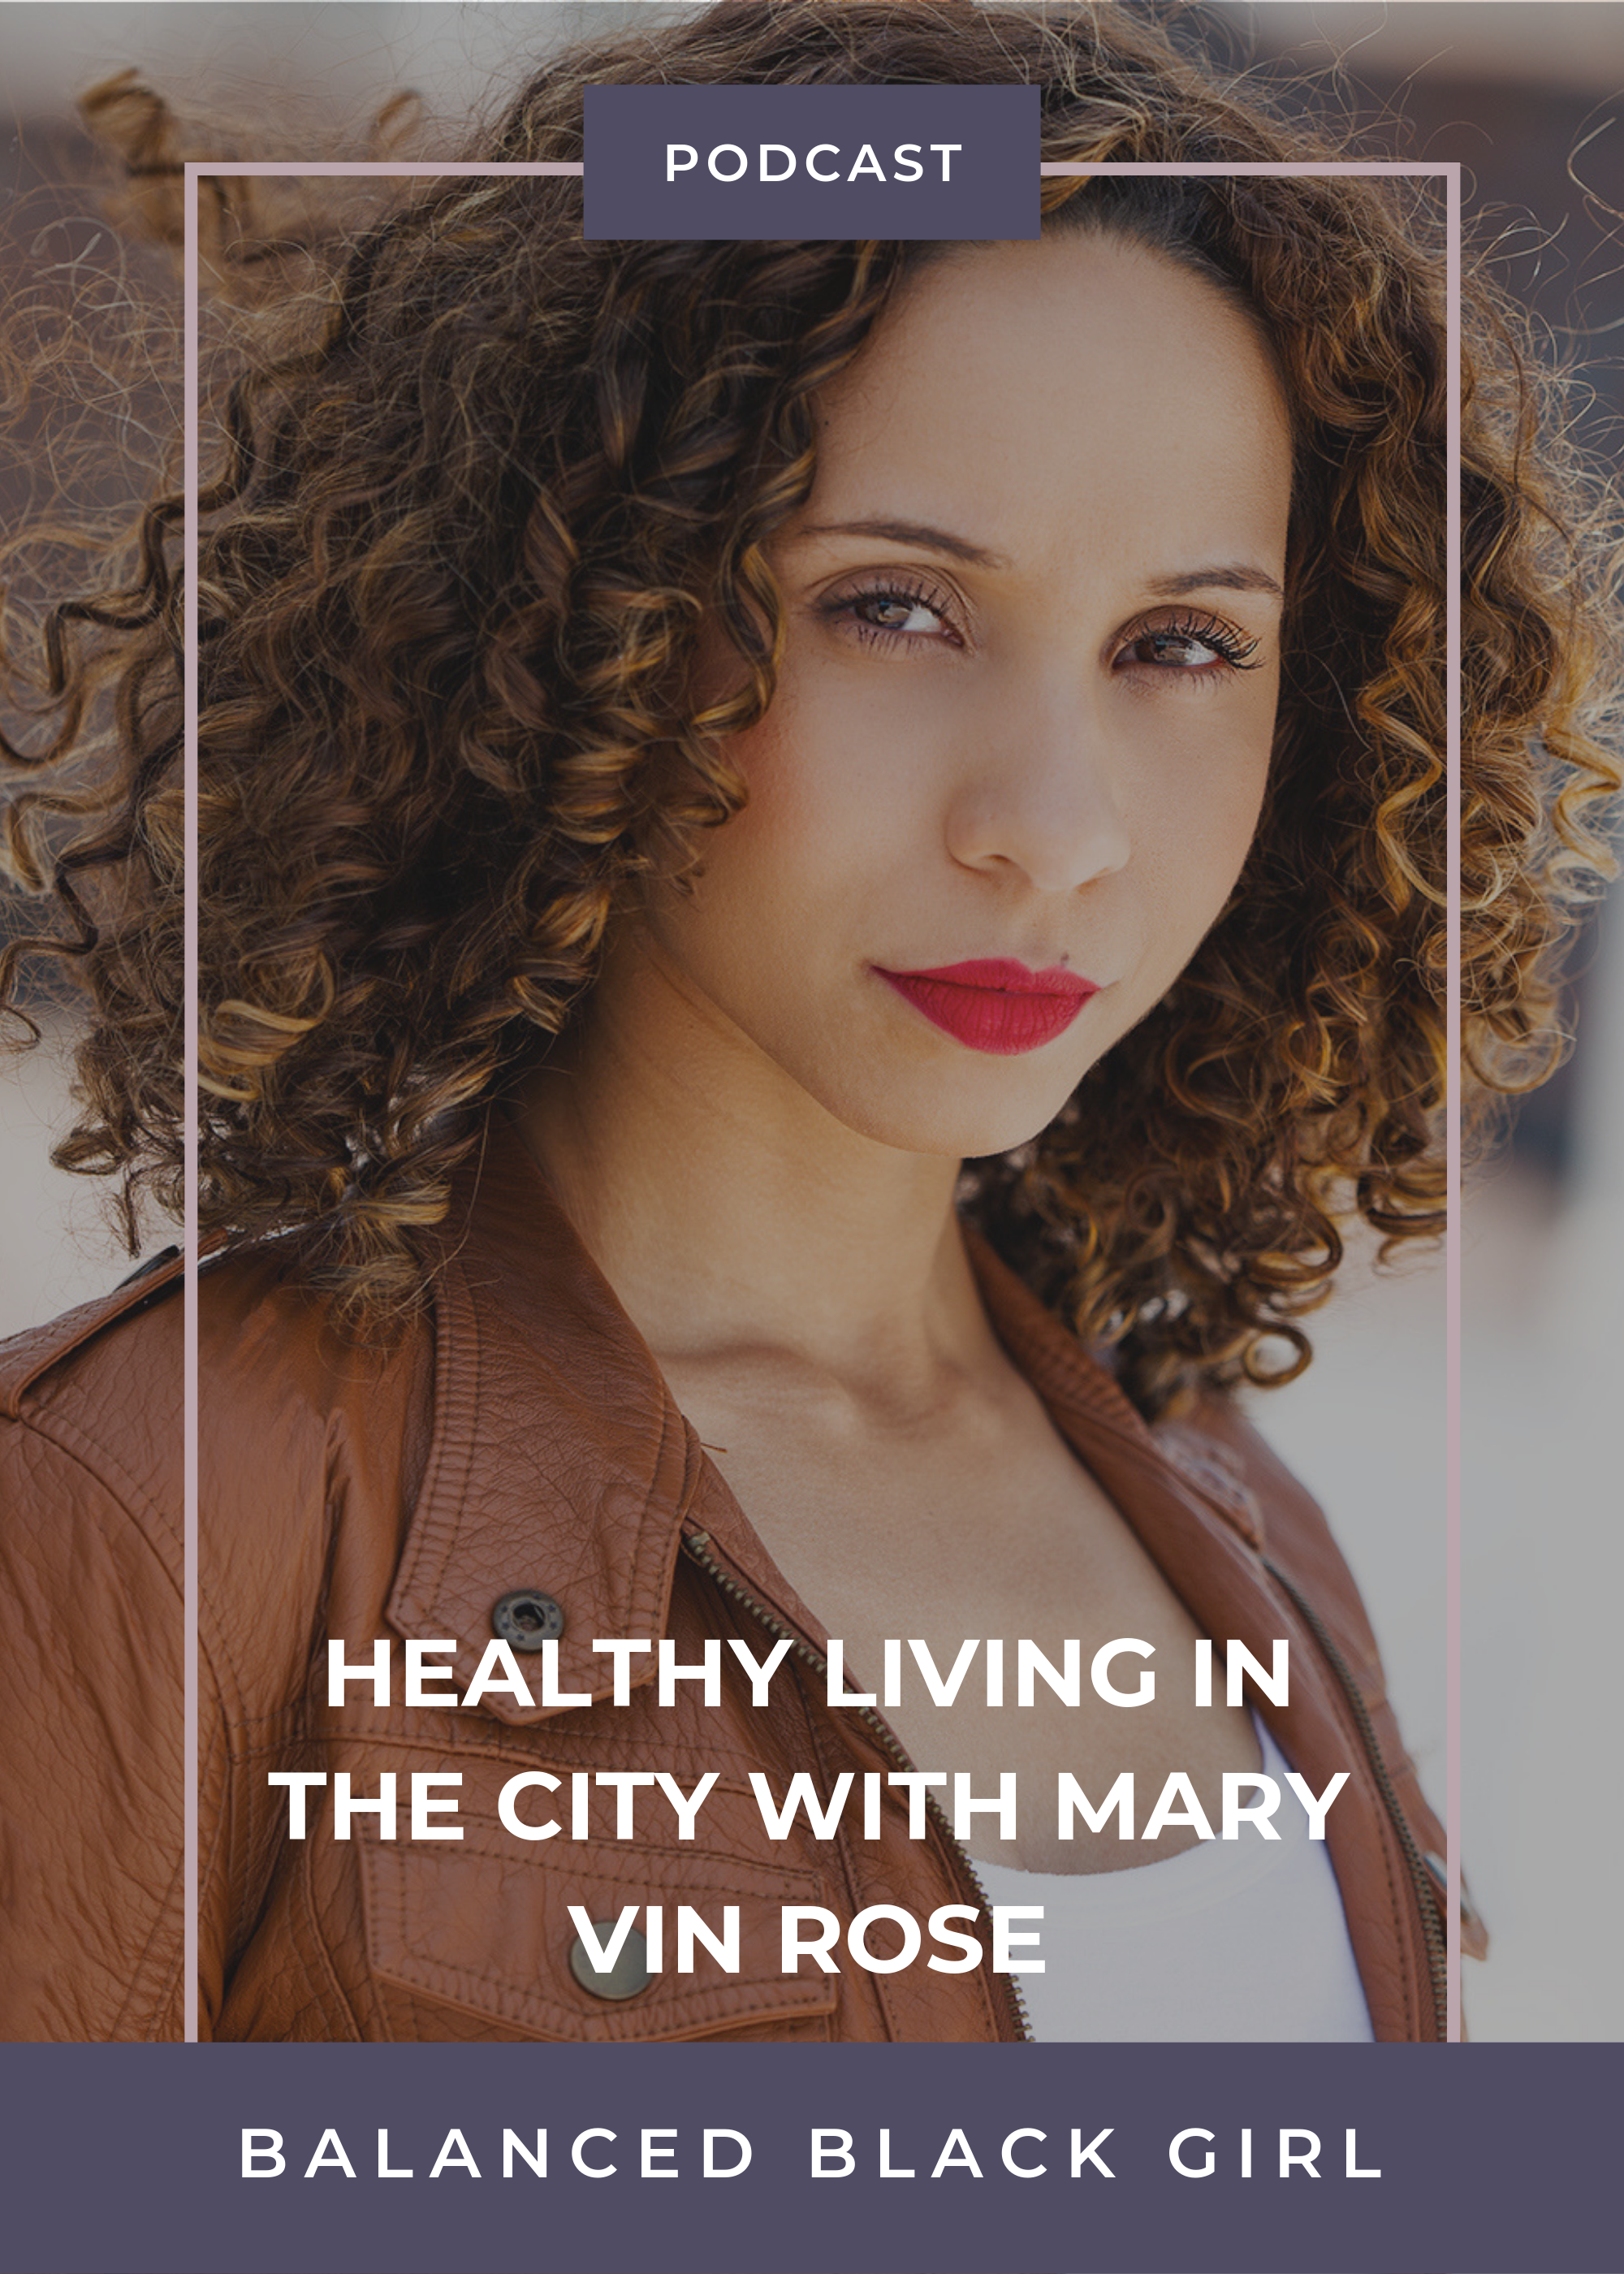 Healthy Living in the City with Mary Vin Rose | Balanced Black Girl Podcast